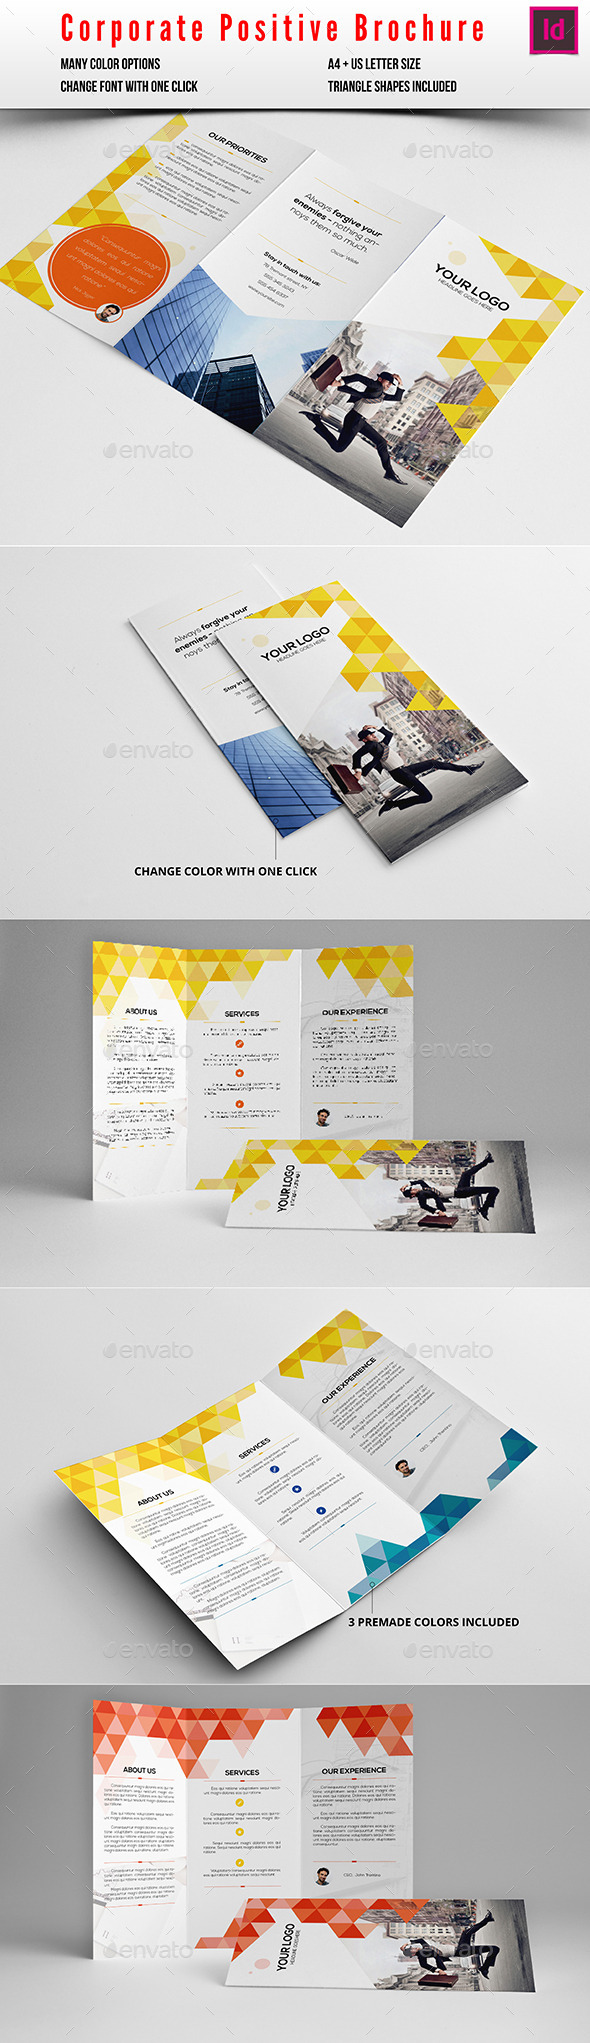 Corporate Positive Brochure - Corporate Brochures